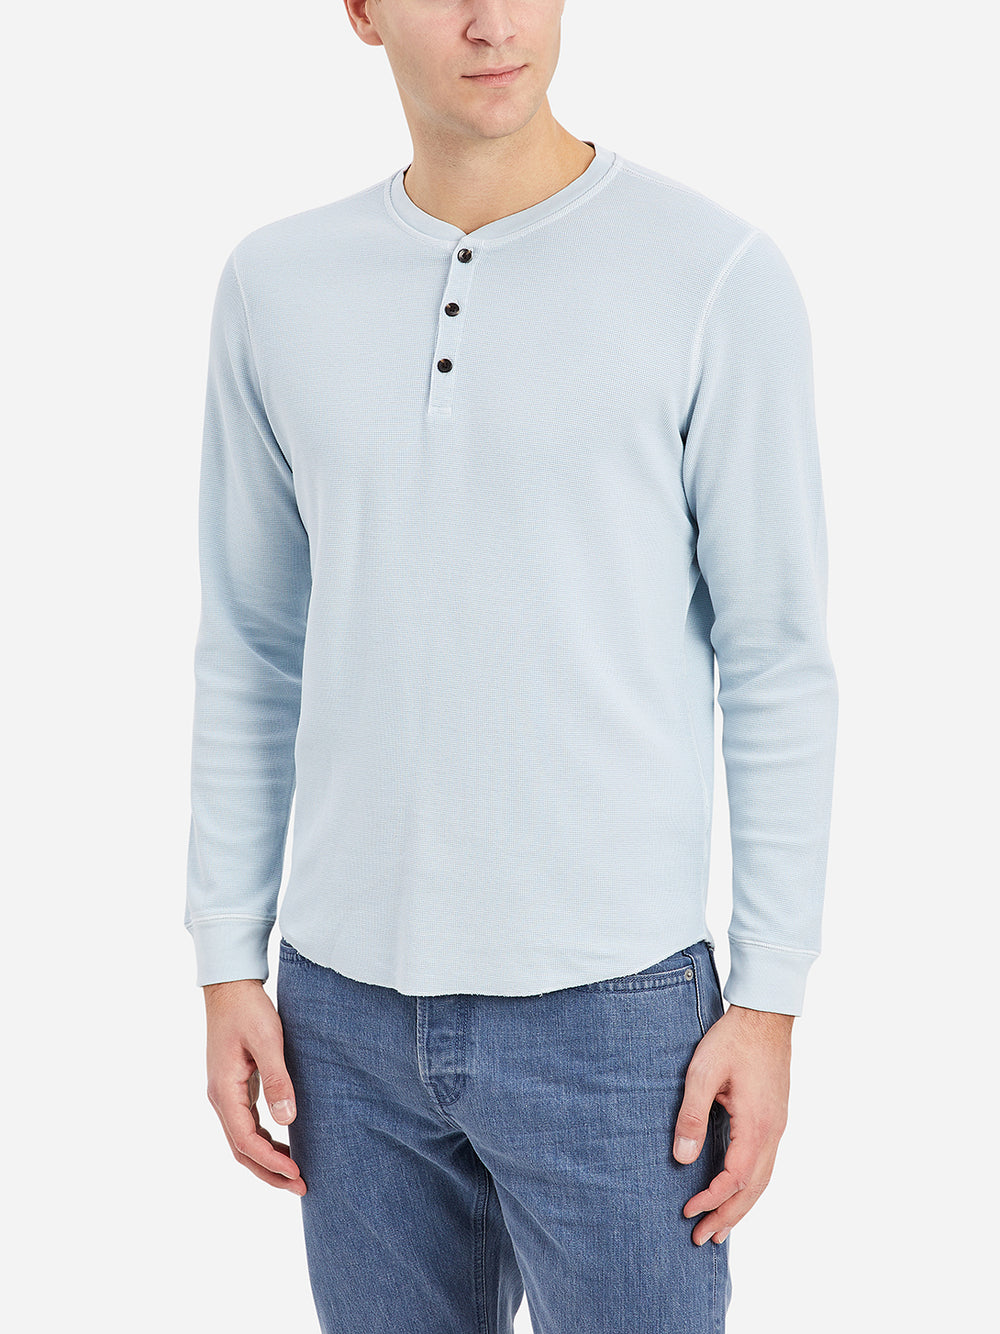 Blue Dreams Court Waffle Henley Men's cotton waffle henleys ONS Clothing